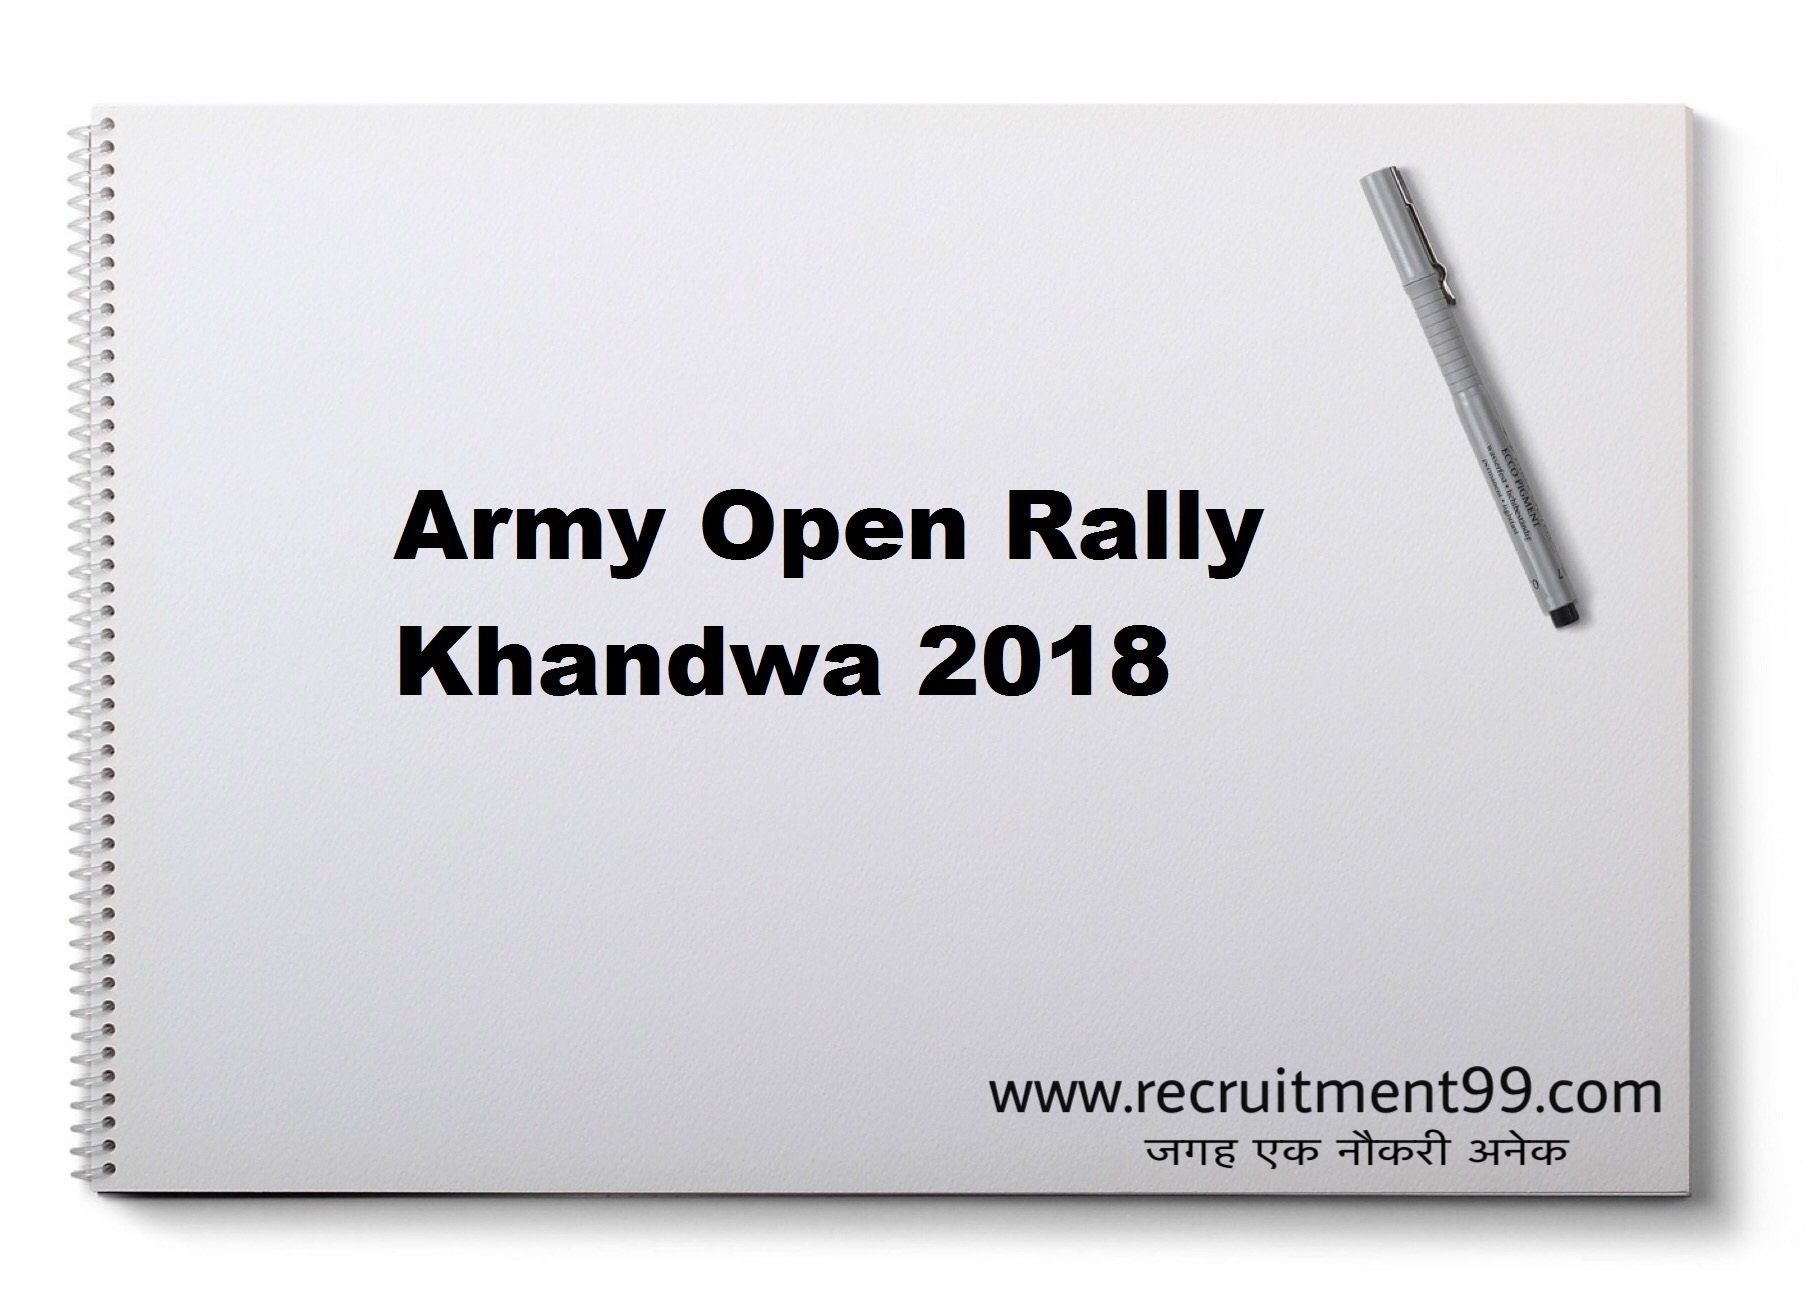 Army Open Rally Khandwa Recruitment Admit Card Result 2018